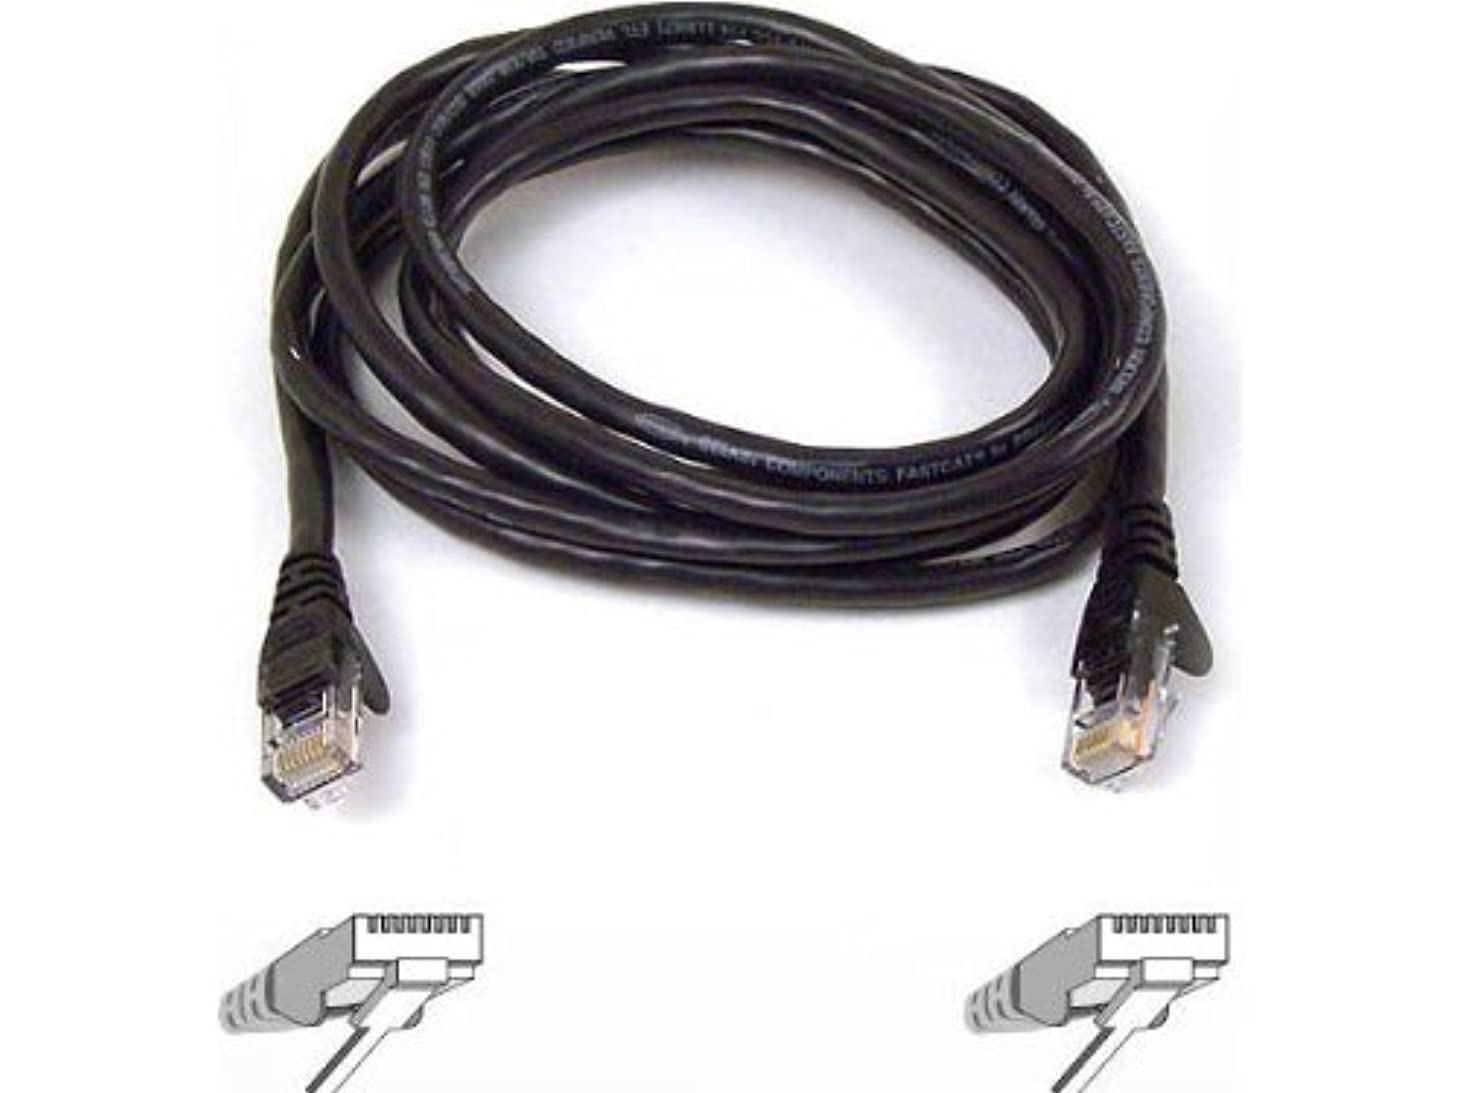 Belkin High Performance Category 6 UTP Patch Cable 25ft (Black) (A3L980-25-BK)